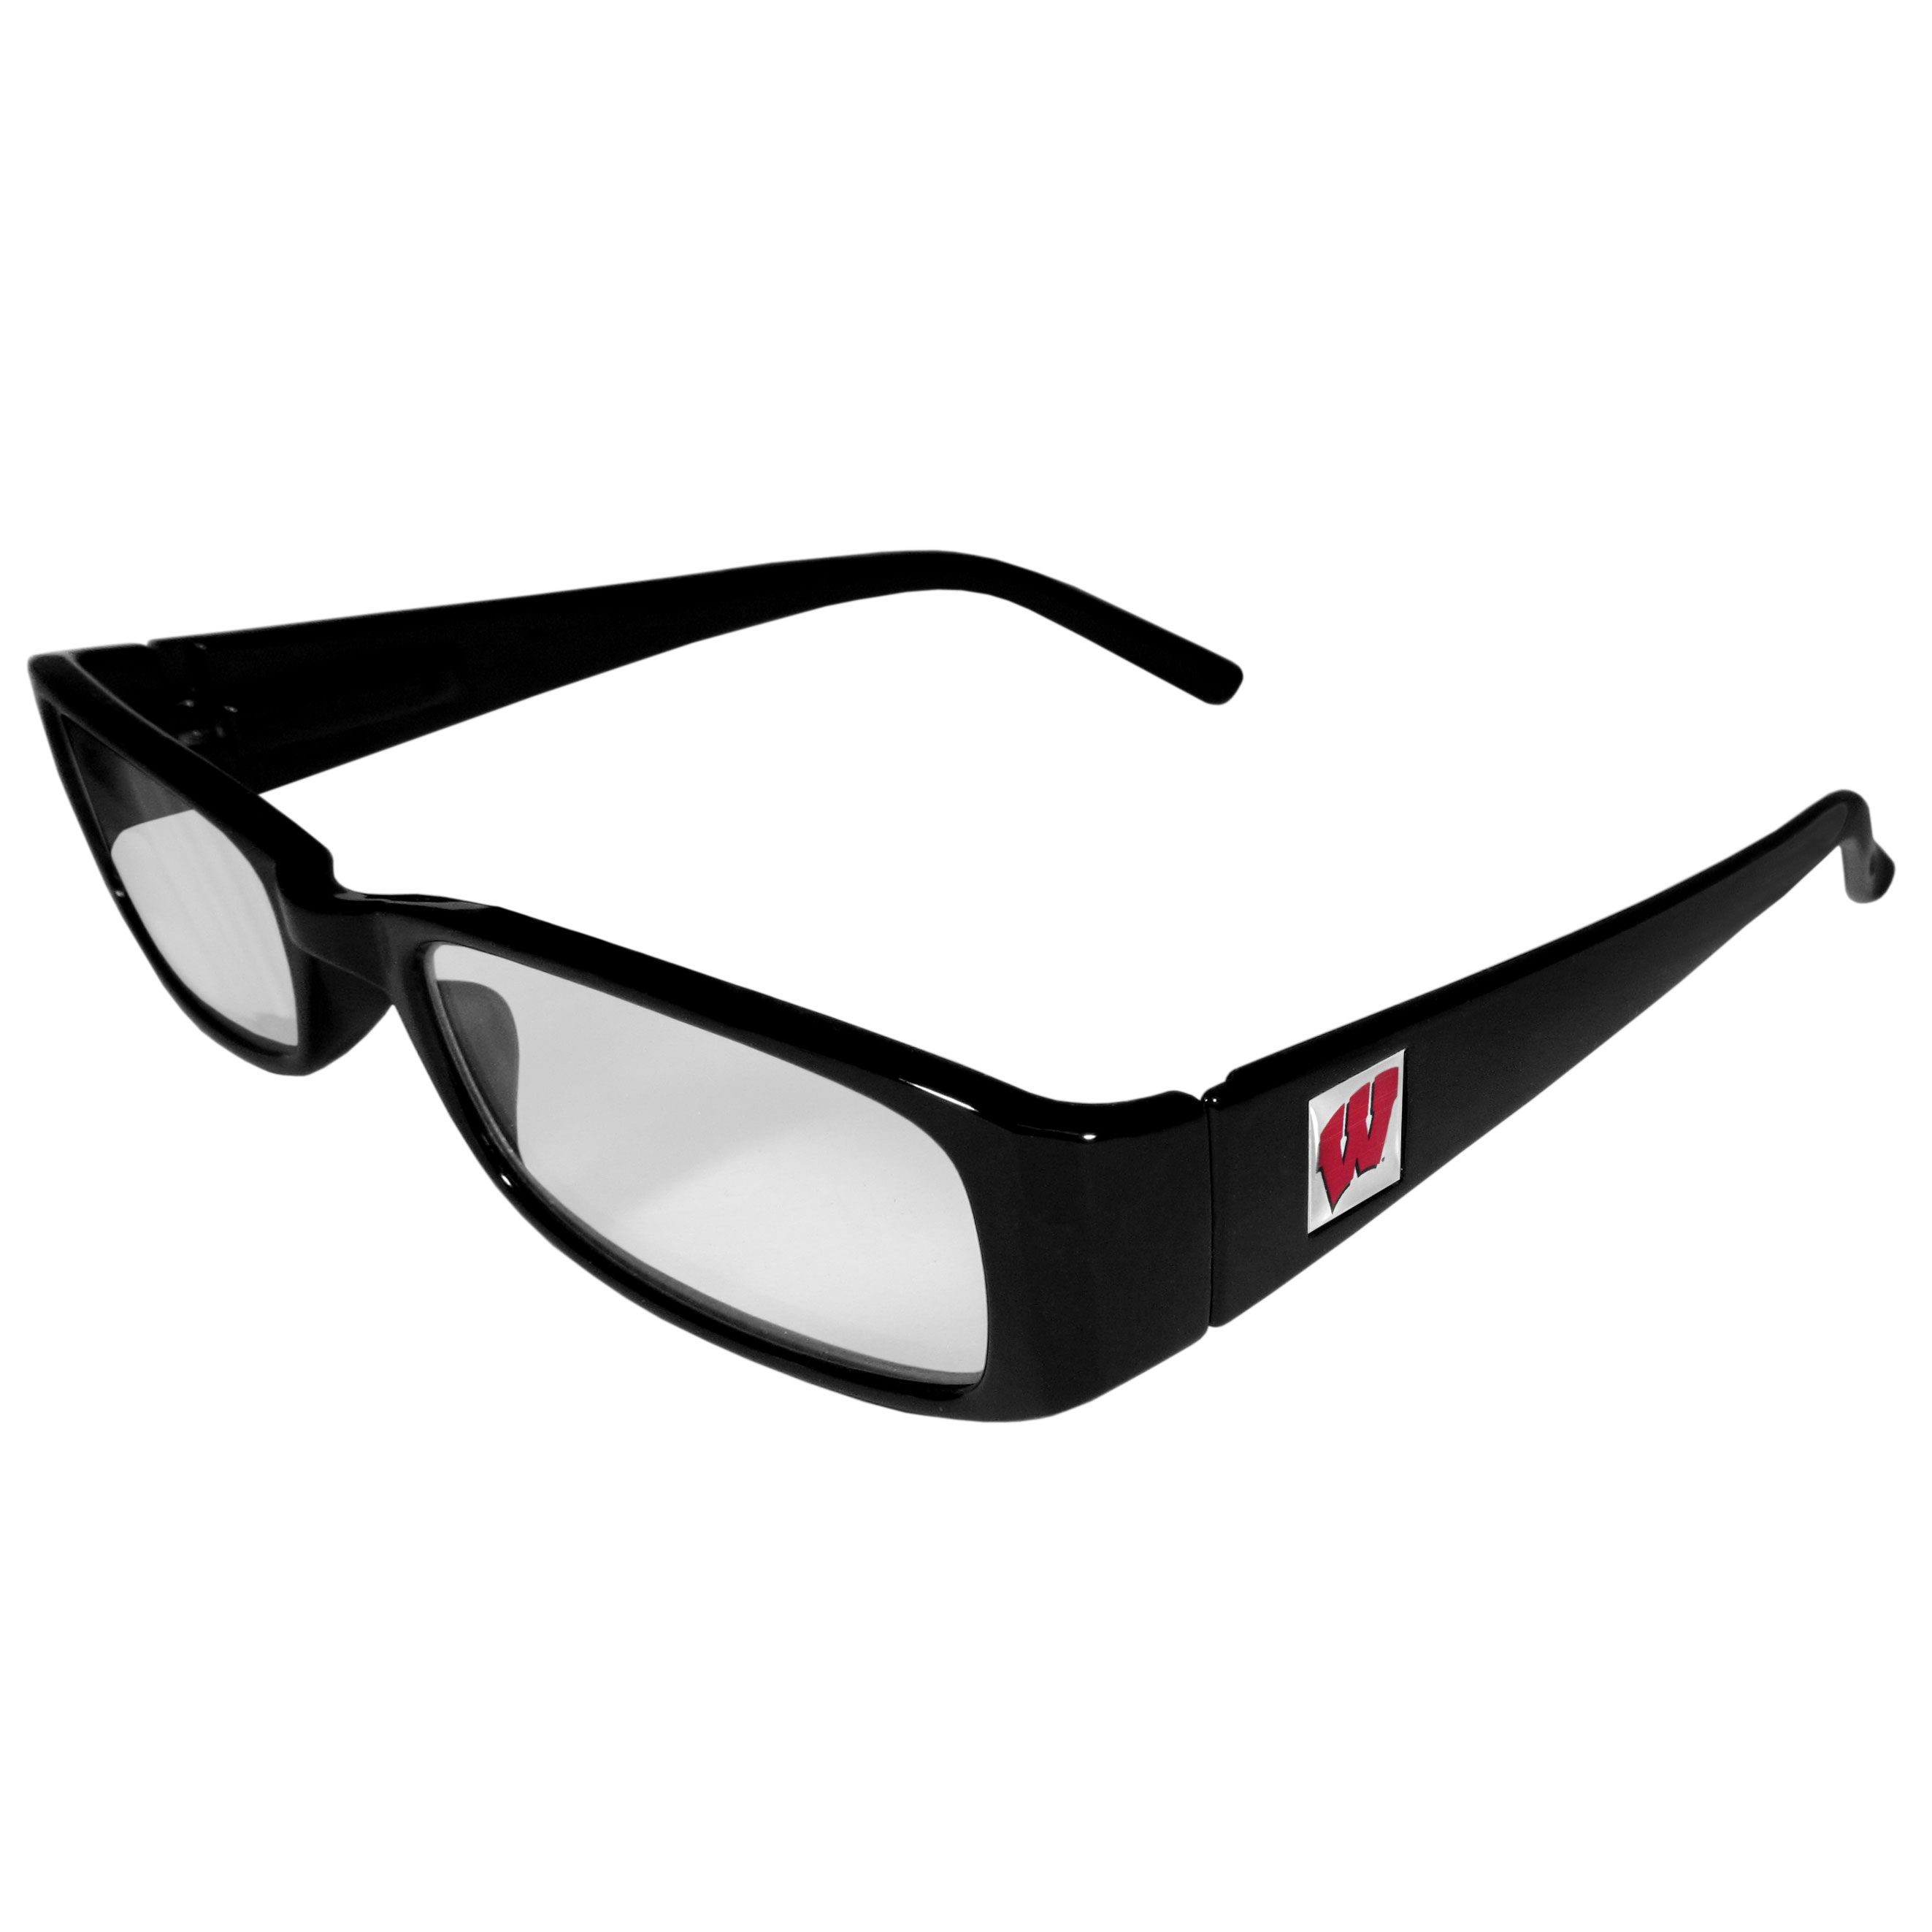 Wisconsin Badgers Black Reading Glasses +1.25 - Our Wisconsin Badgers reading glasses are 5.25 inches wide and feature the team logo on each arm. Magnification Power 1.25